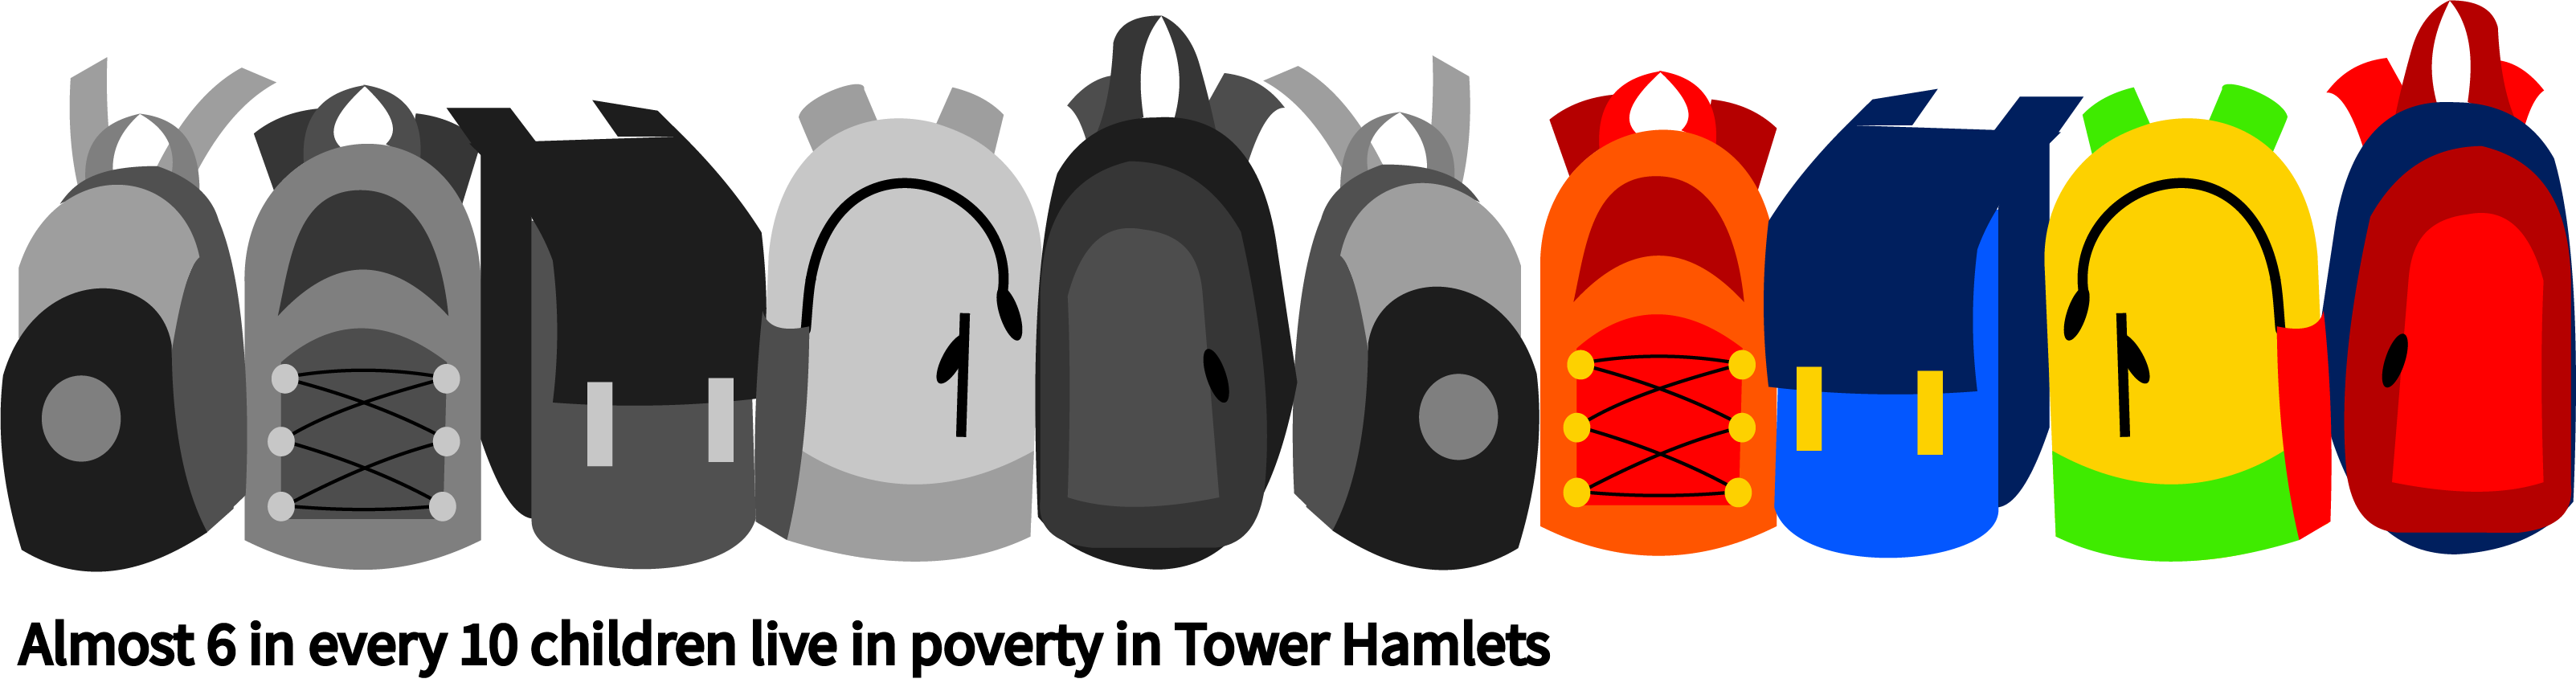 Infographic on how well schools prepared for coronavirus. It shows ten illustrations of schoolbags, six of which are shaded grey, four of which are in colour, representing the fact that in Tower Hamlets, 6 out of every 10 children live in poverty.